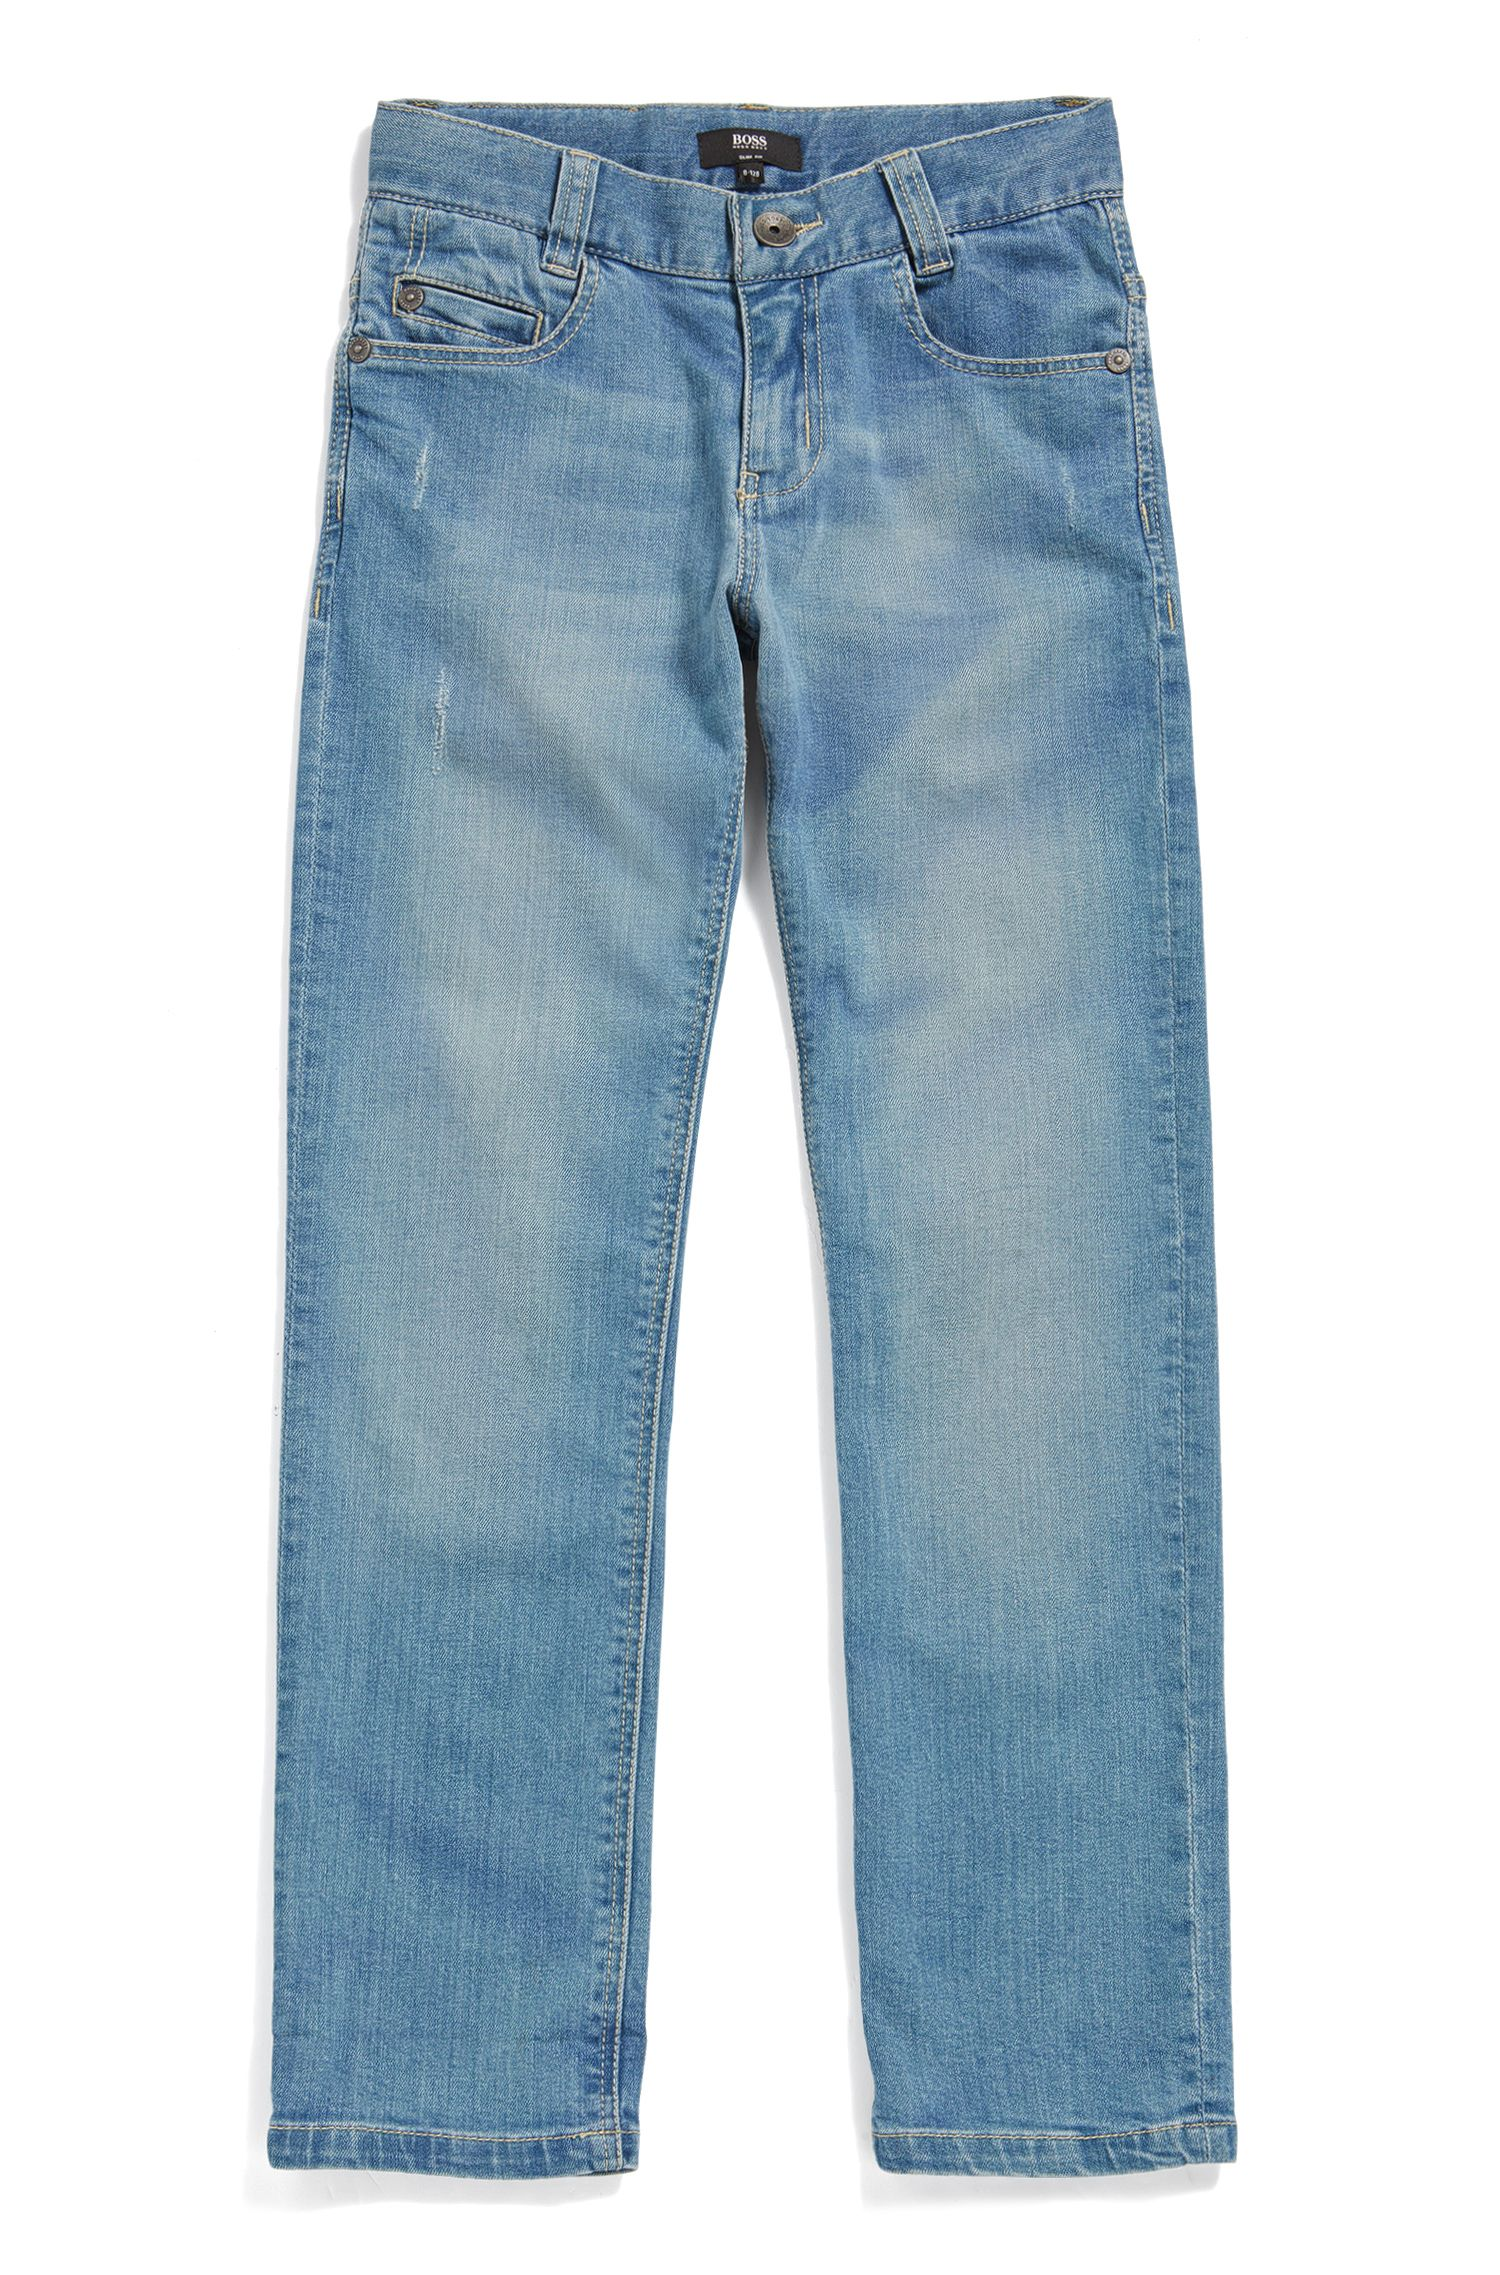 Slim-fit kinderjeans van stretchdenim